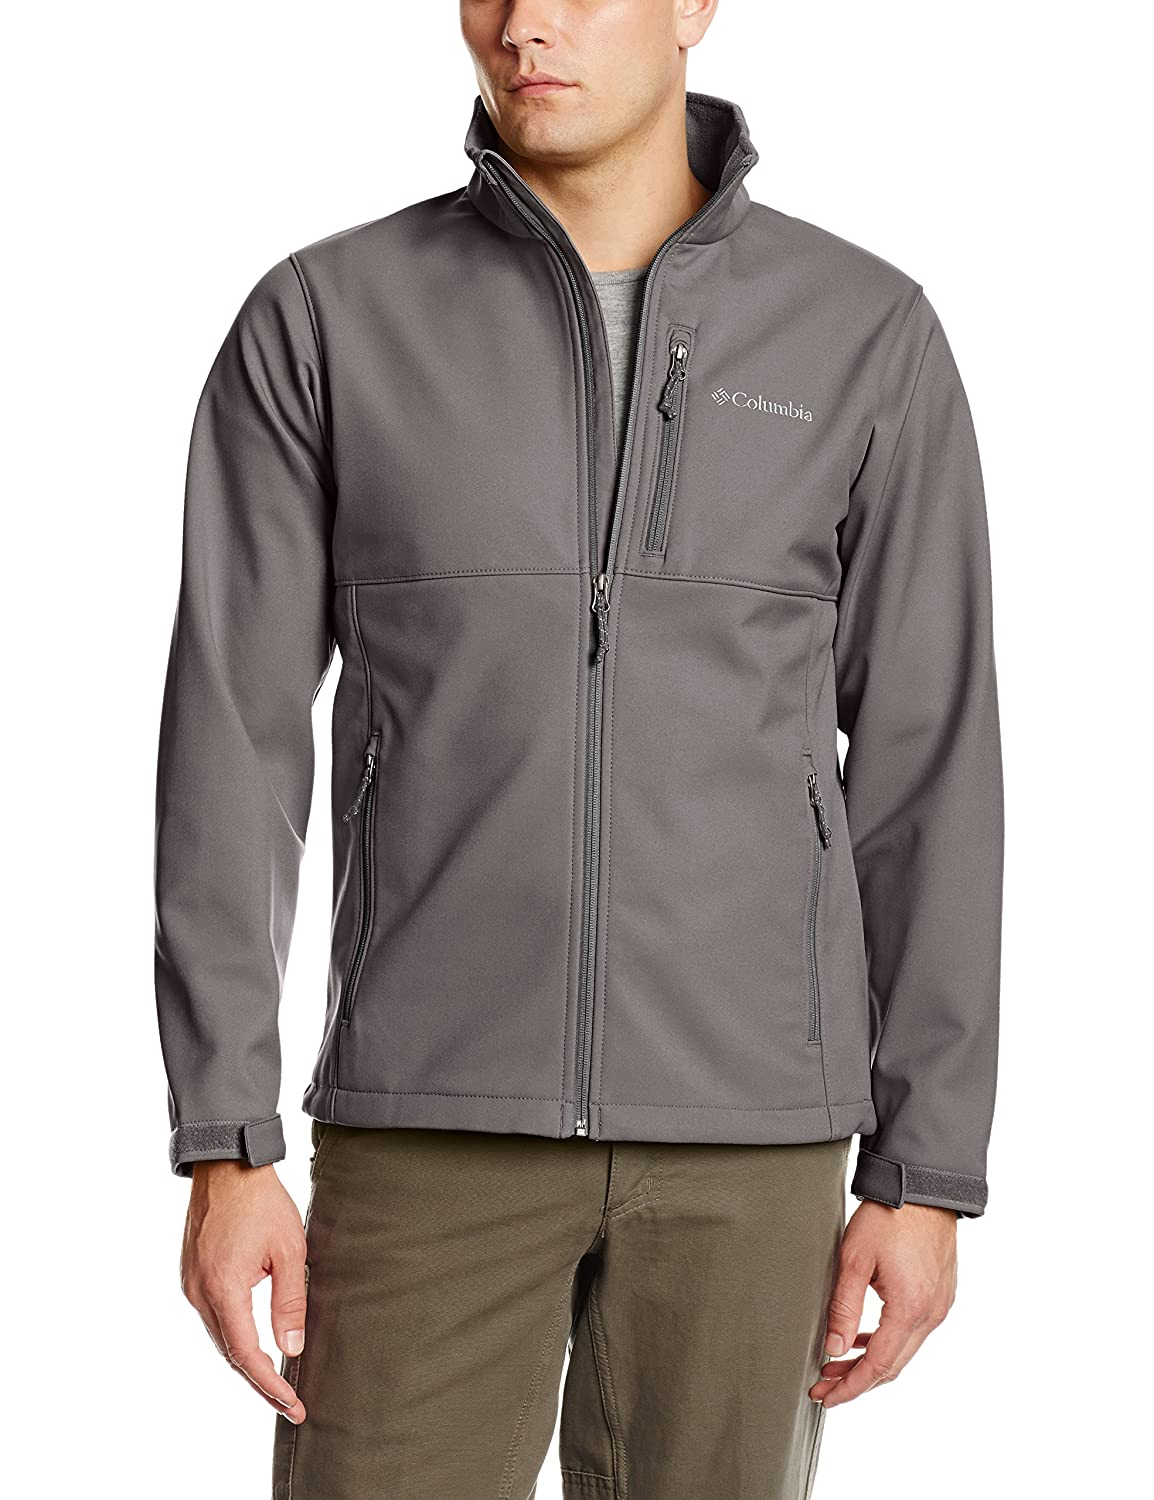 ad8a61f44 Columbia Men's Ascender Softshell Jacket at Amazon Men's Clothing store: